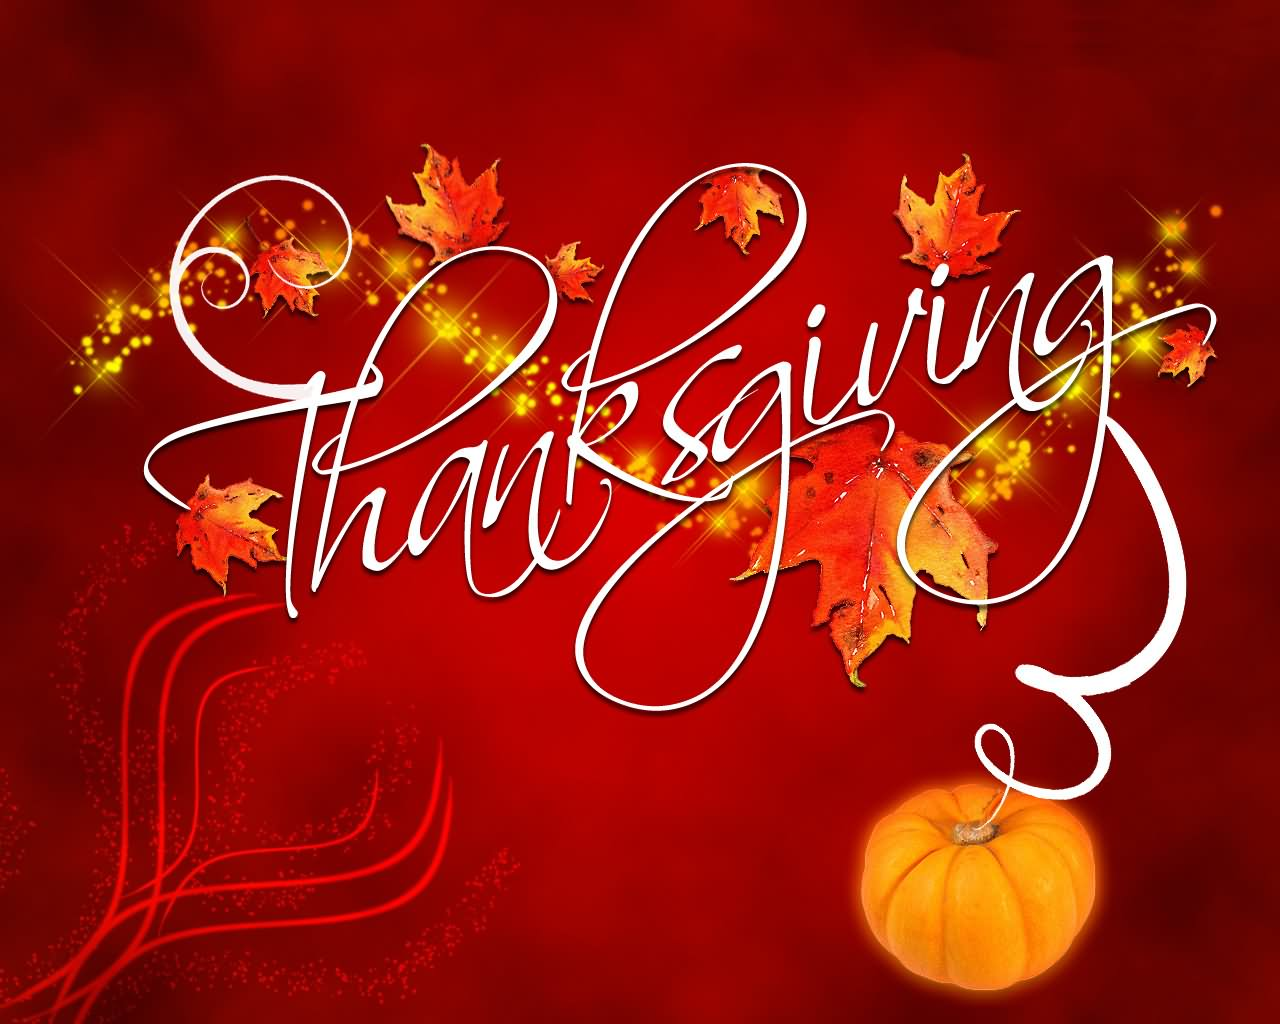 Happy thanksgiving greeting cards techicy thanksgiving greeting cards happy thanksgiving greeting cards m4hsunfo